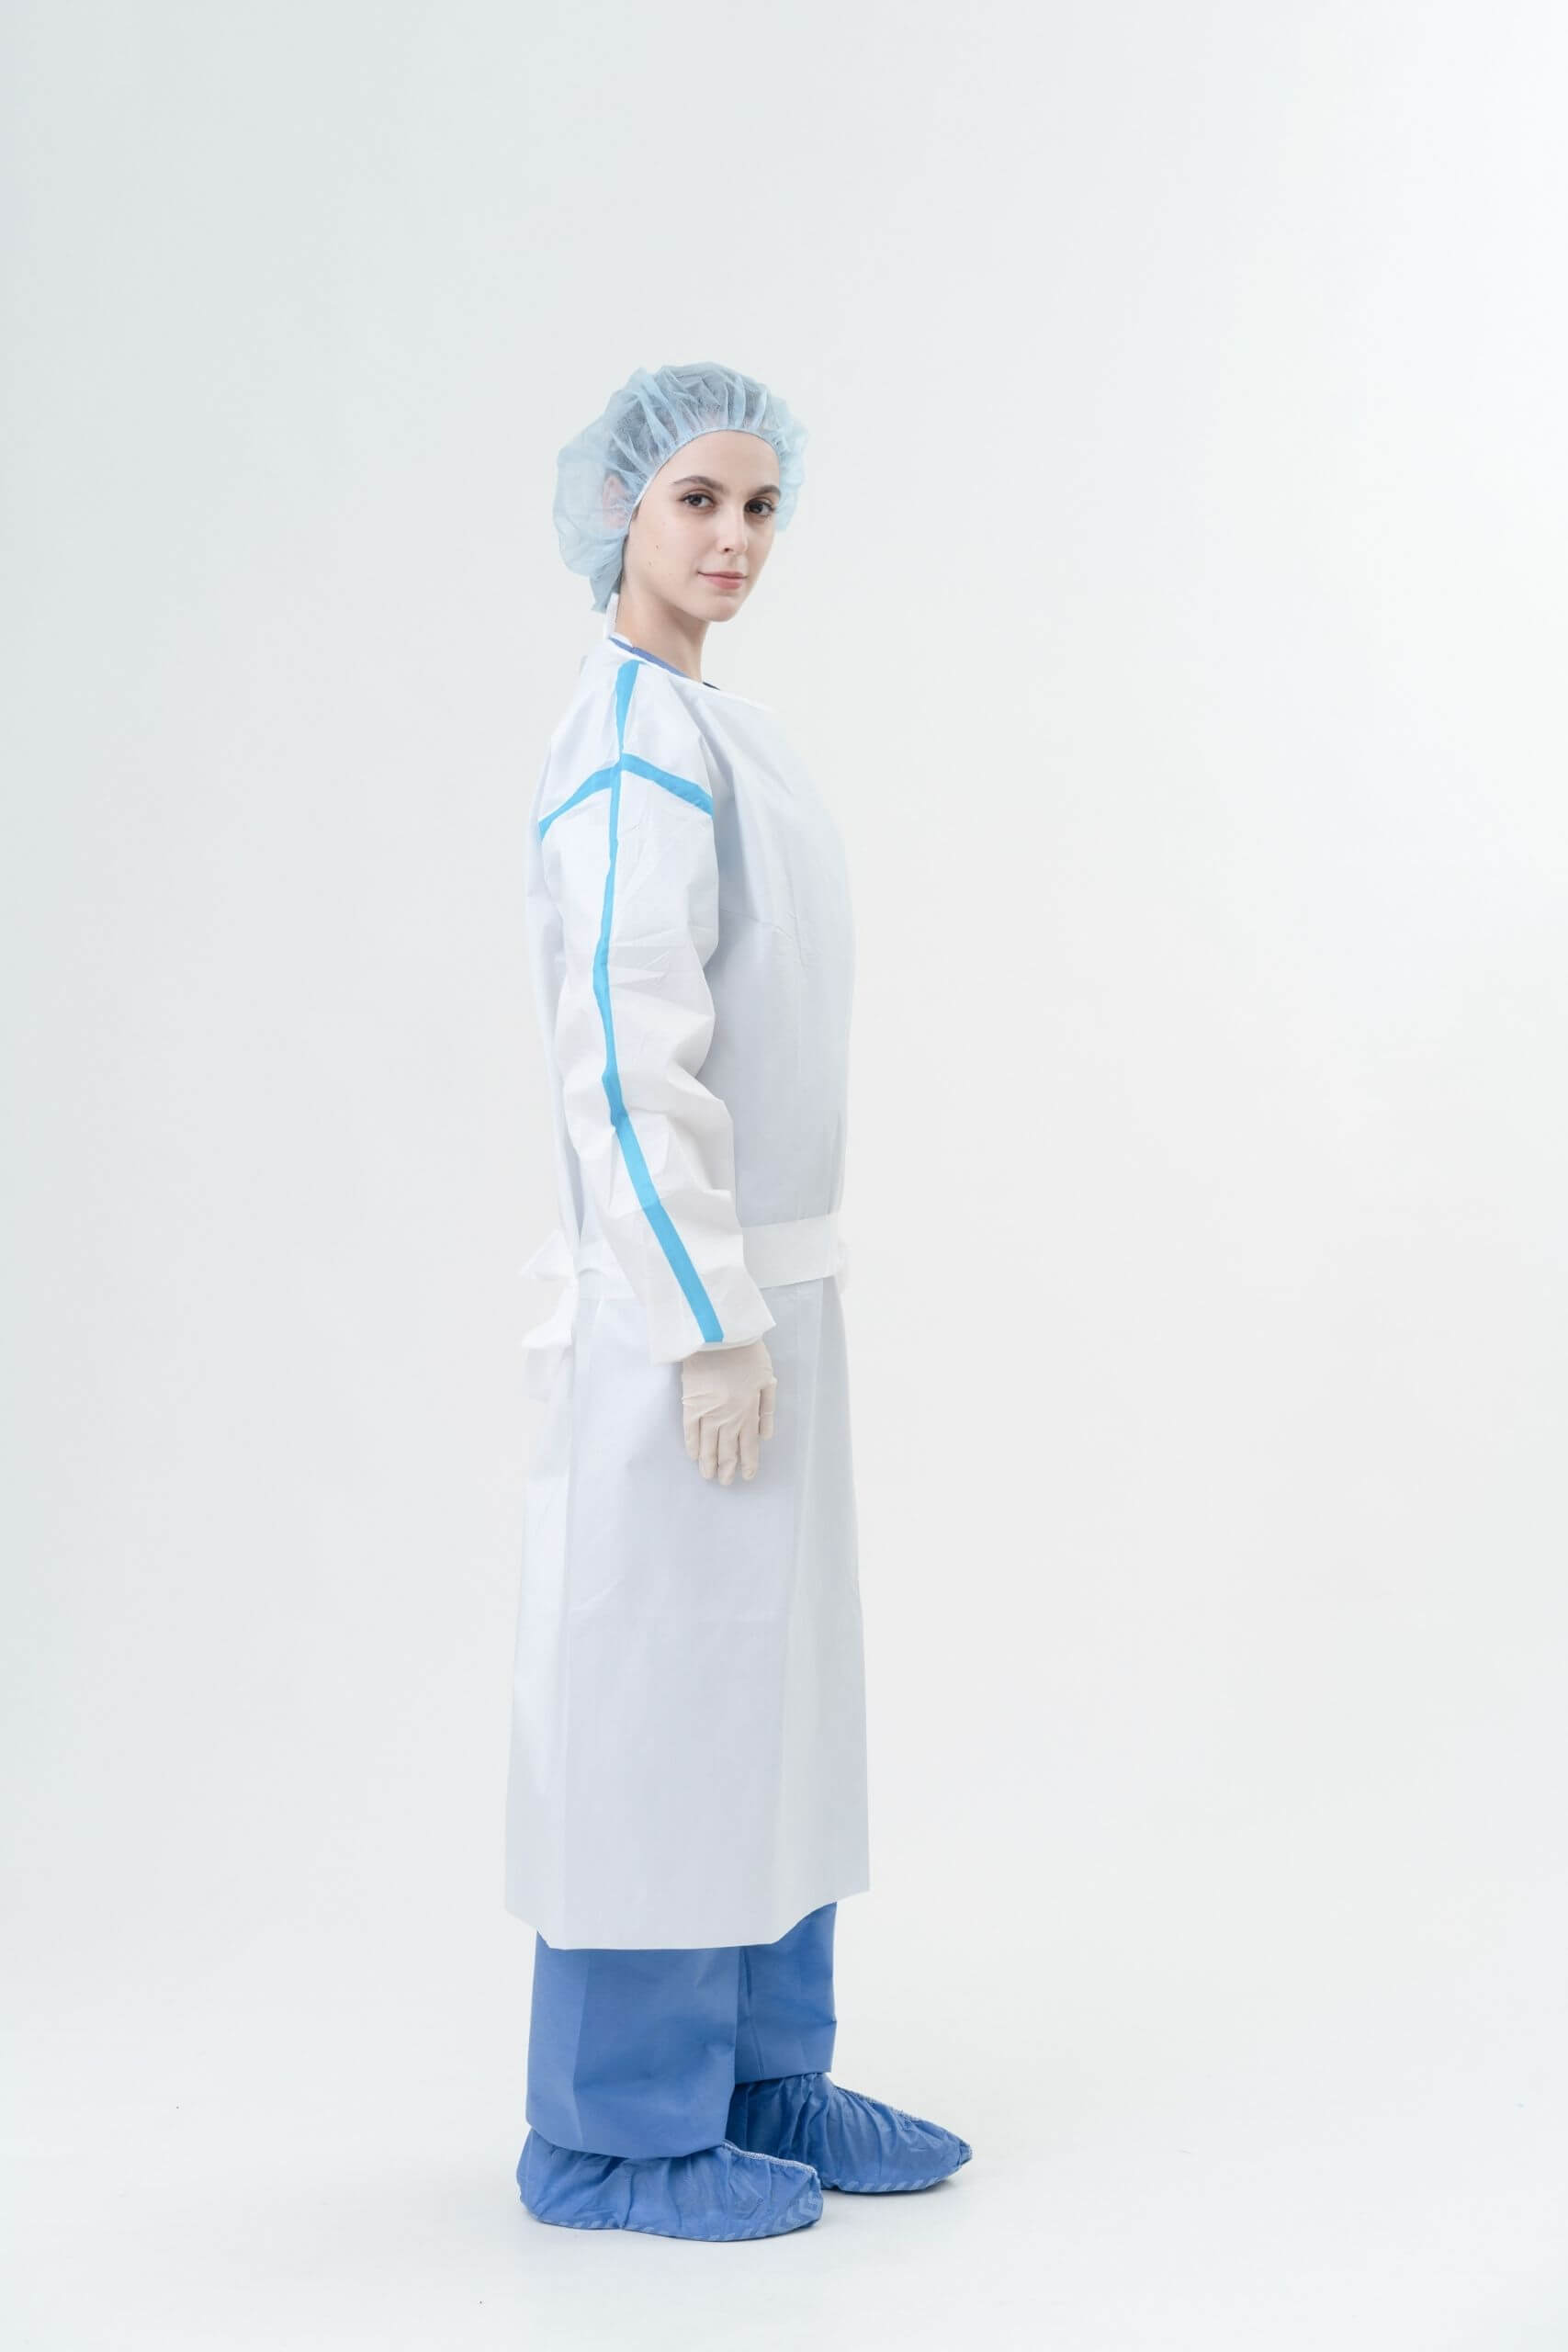 AAMI Level 4 PP+PE 63gsm Isolation Gowns with Tape Side四級隔離衣有膠條-Medtecs美德醫療